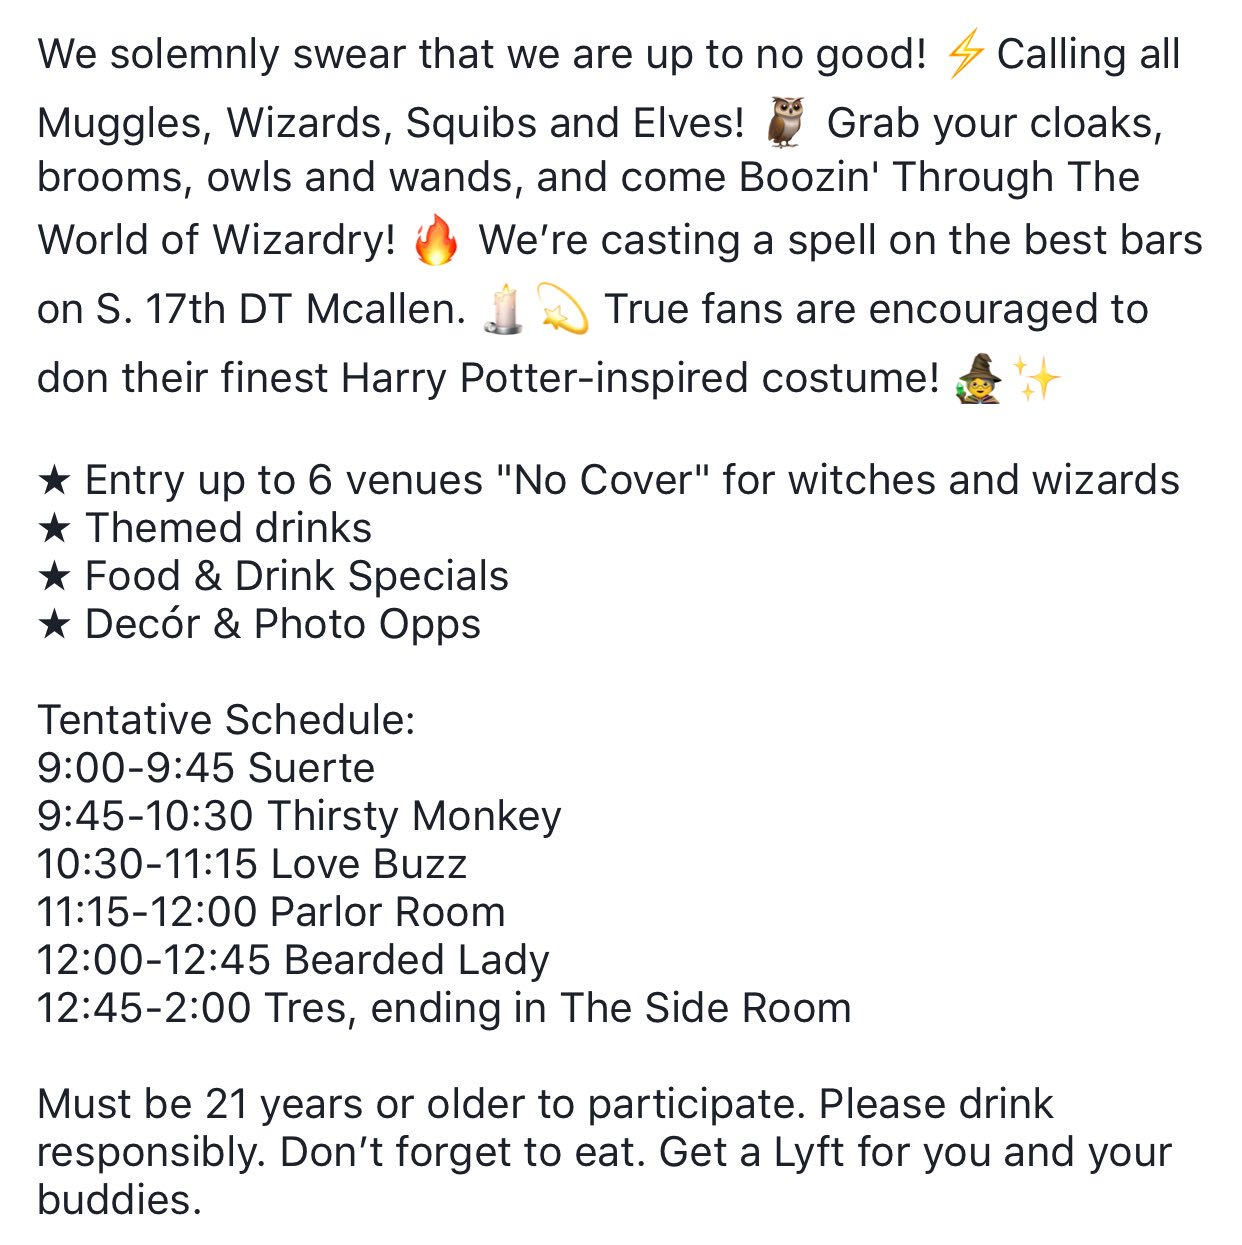 Suerte Bar Grill On Twitter We Solemnly Swear That We Are Up To No Good Calling All Muggles Wizards Squibs Elves Grab Your Cloaks Brooms Owls And Wands And